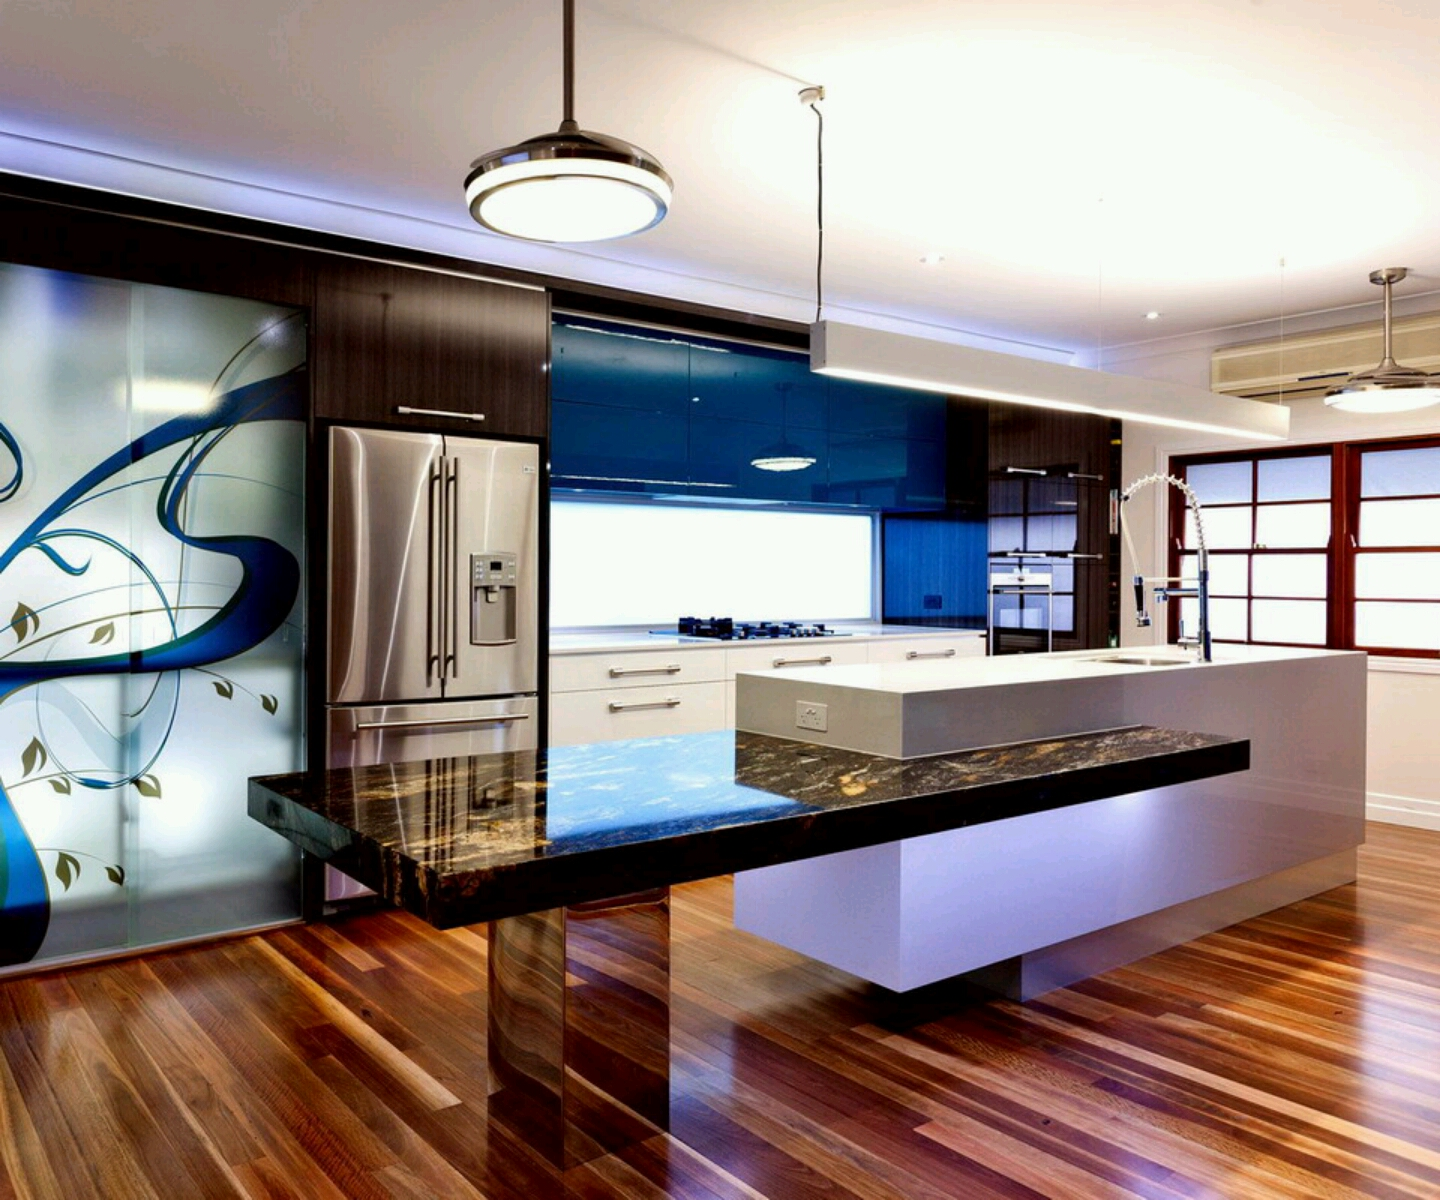 Ultra modern kitchen designs ideas new home designs for House design kitchen ideas